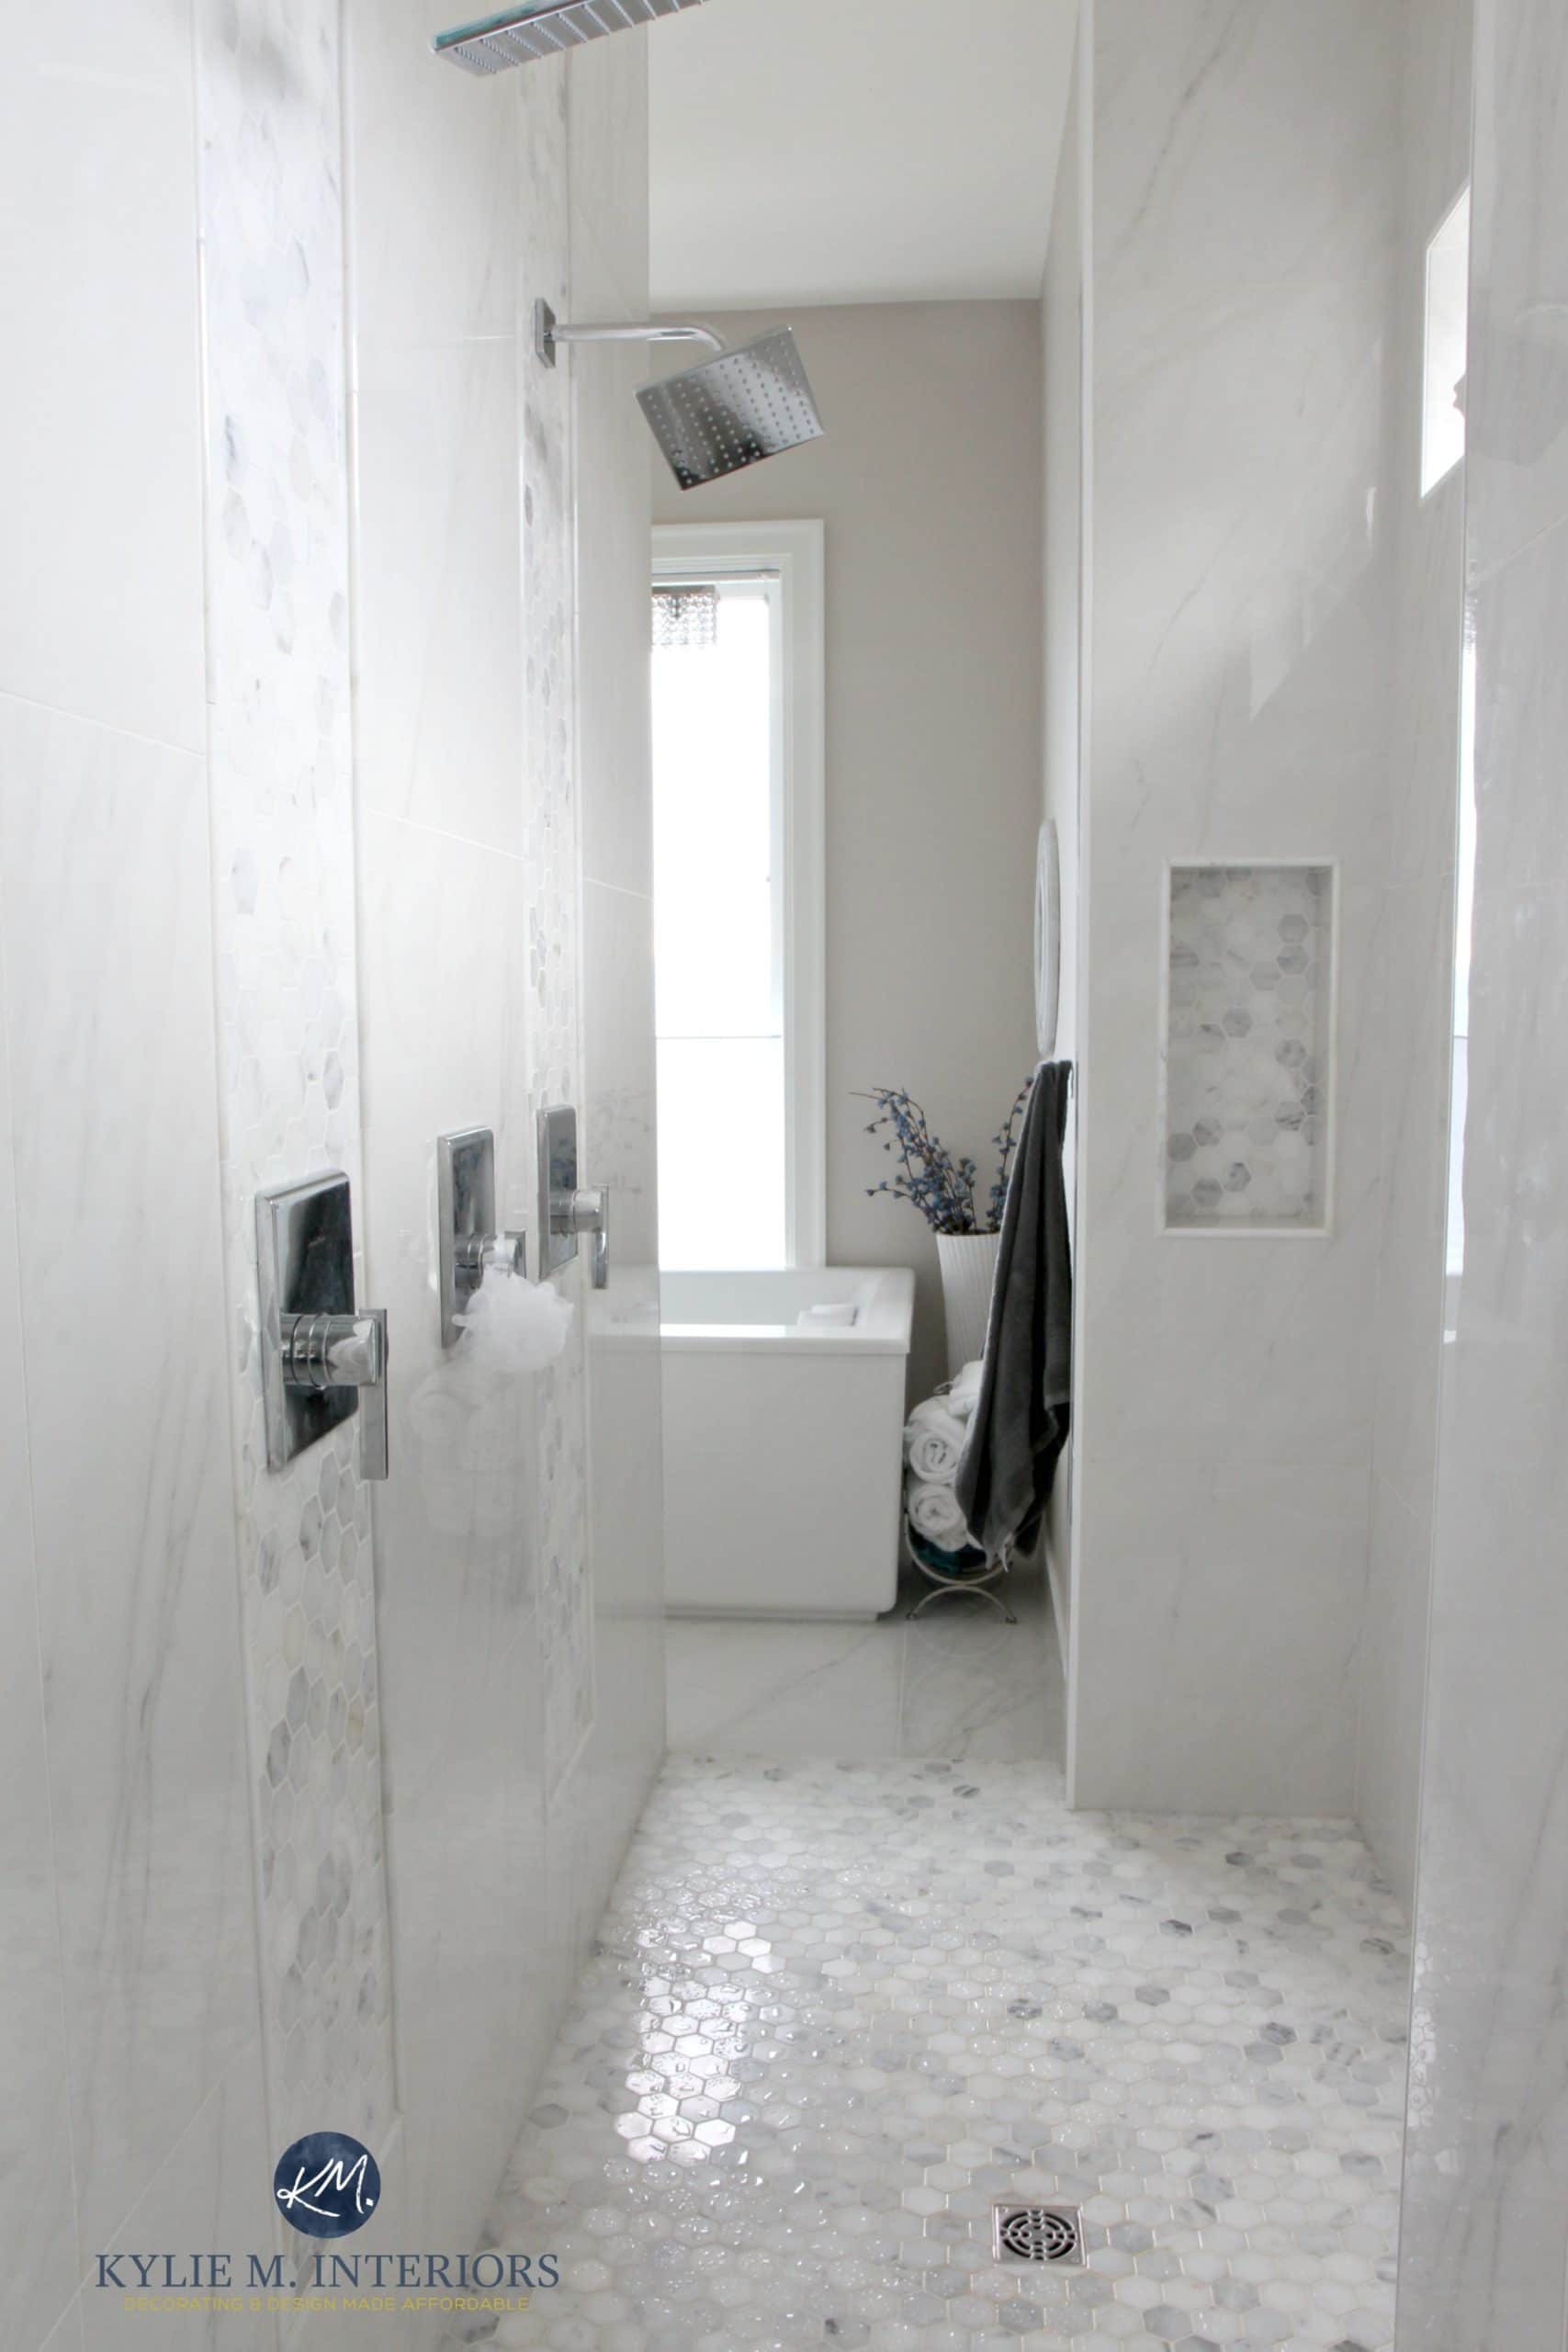 Bathroom Sets Luxury Reconditioned Bath Tub In Master Bedroom: Walk-in-shower-in-master-ensuite-bathroom-marble-hexagon